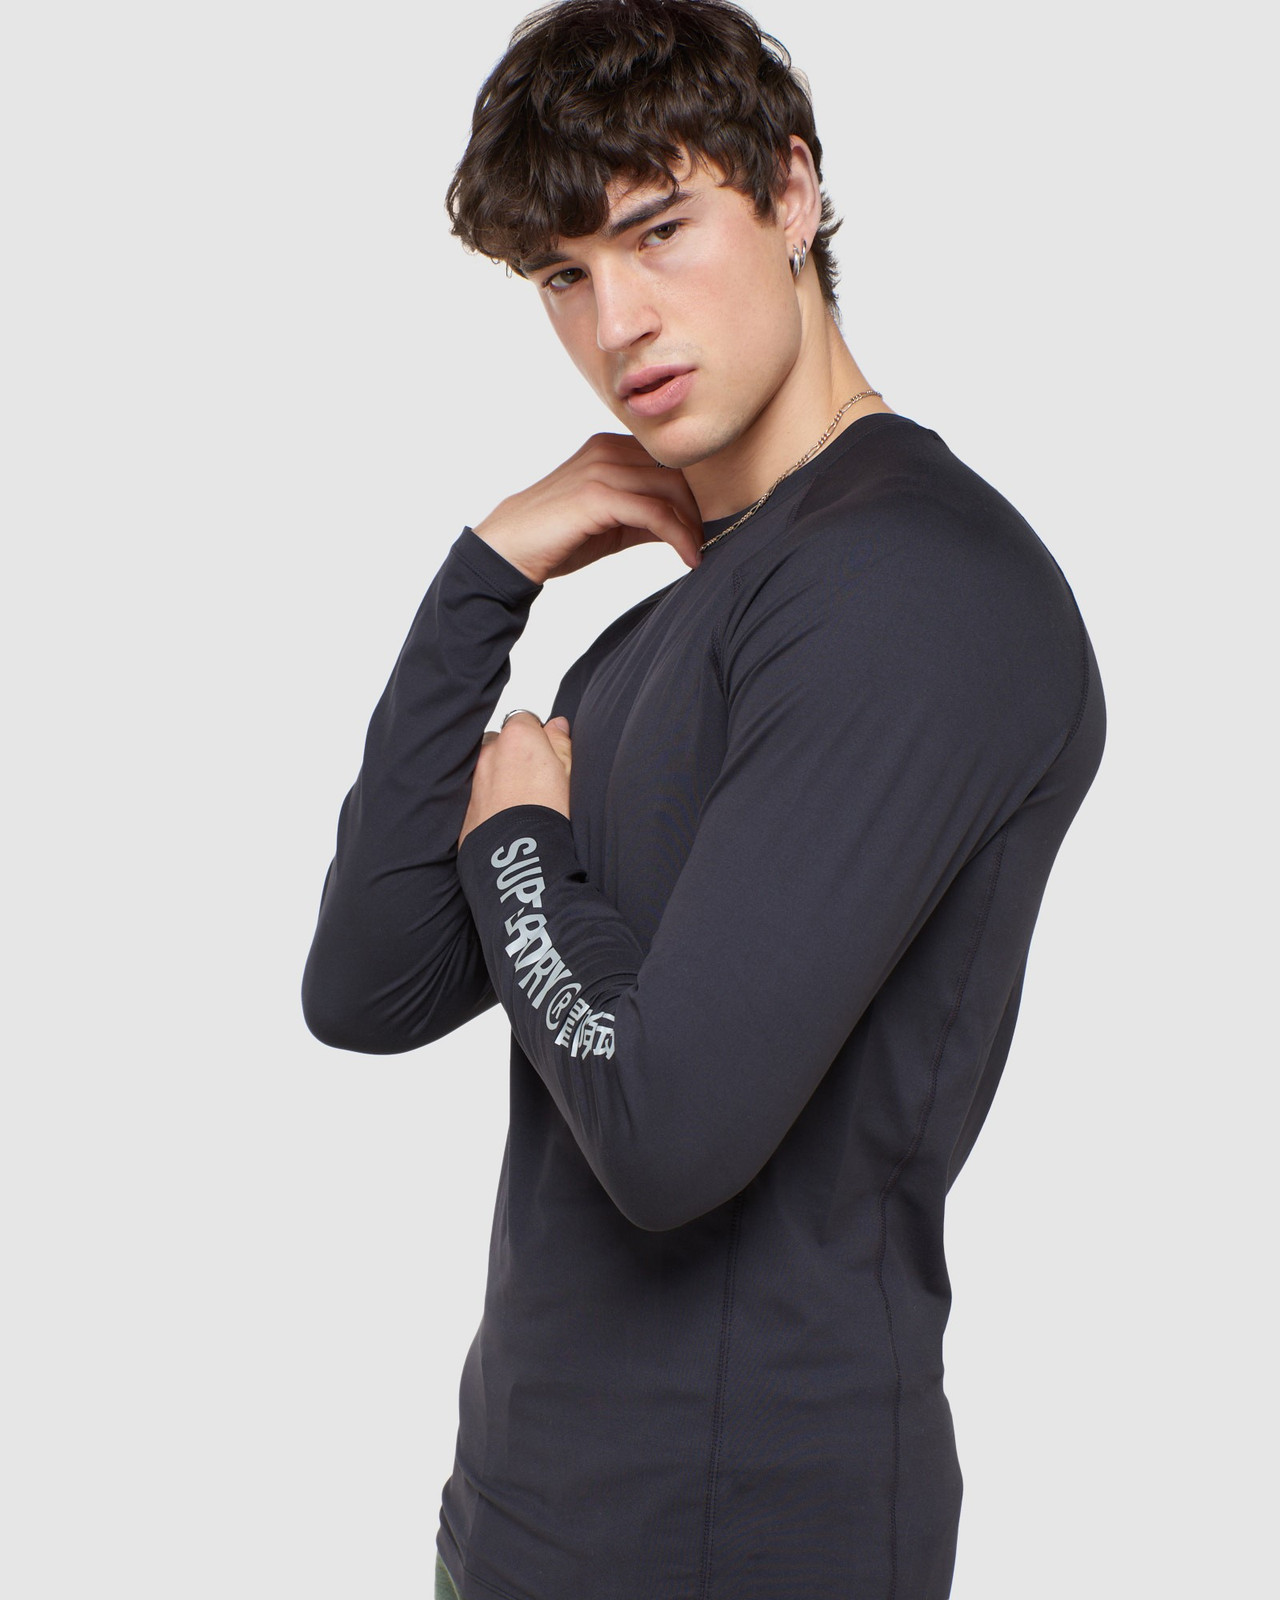 Superdry Mens CREW NECK CARBON BASE LAYER Black Long Sleeve Top 5